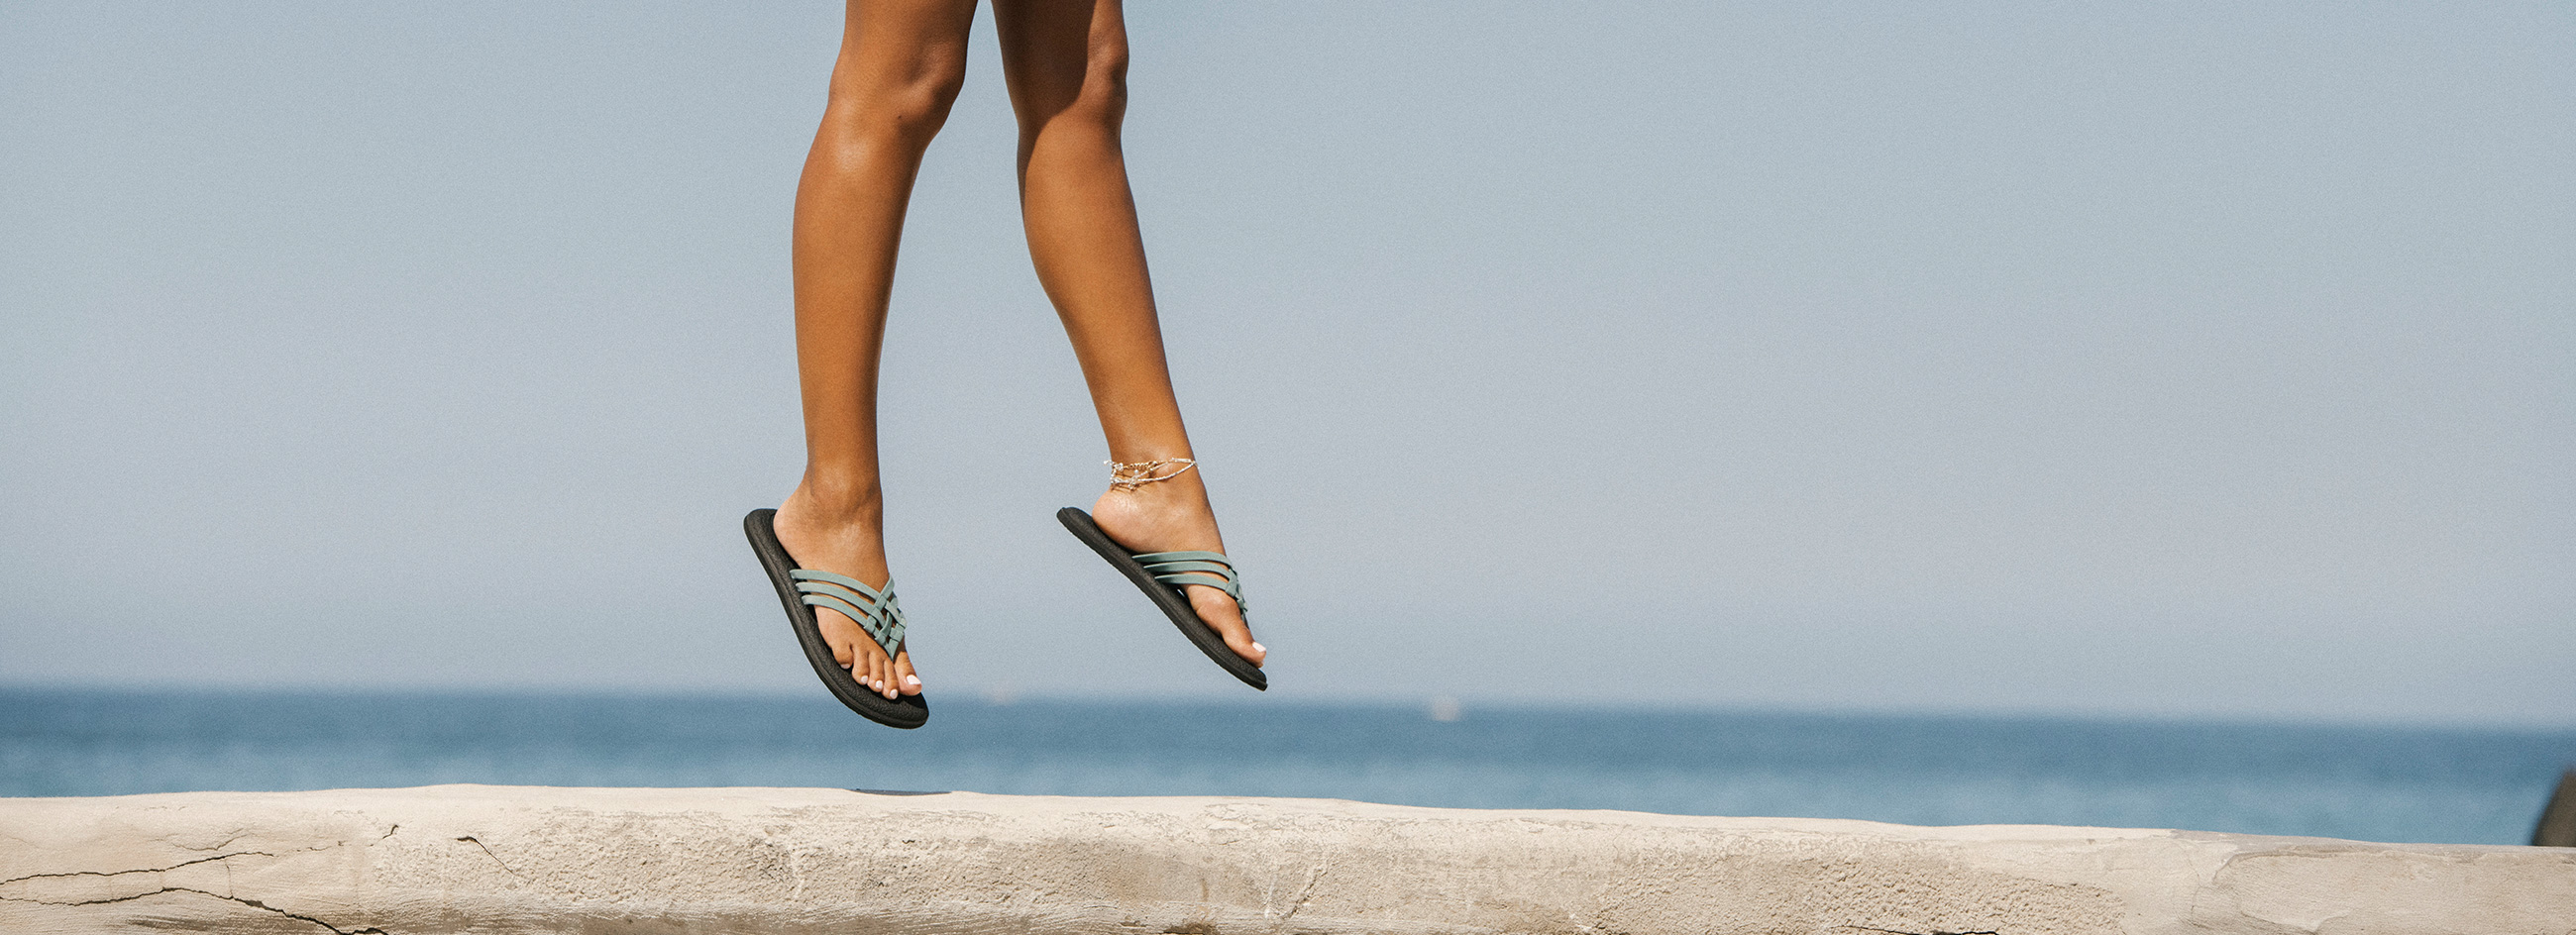 Girl jumping on concrete at the beach wearing Sanuk flip flops.